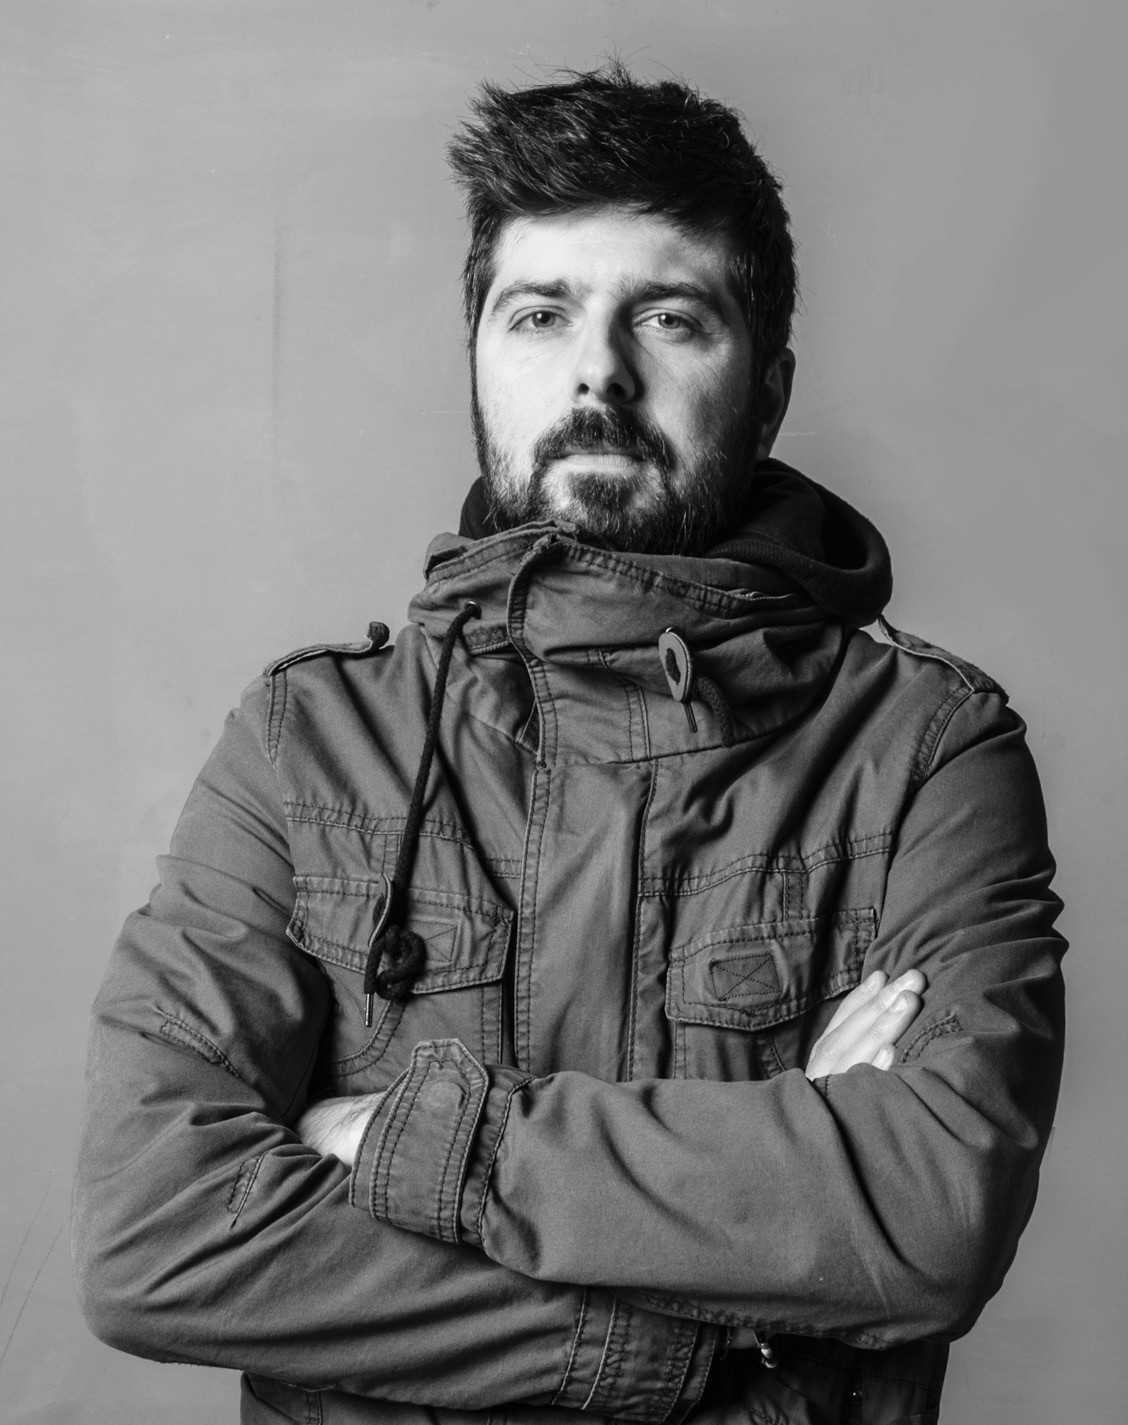 Luca Catino - Founder and creative director